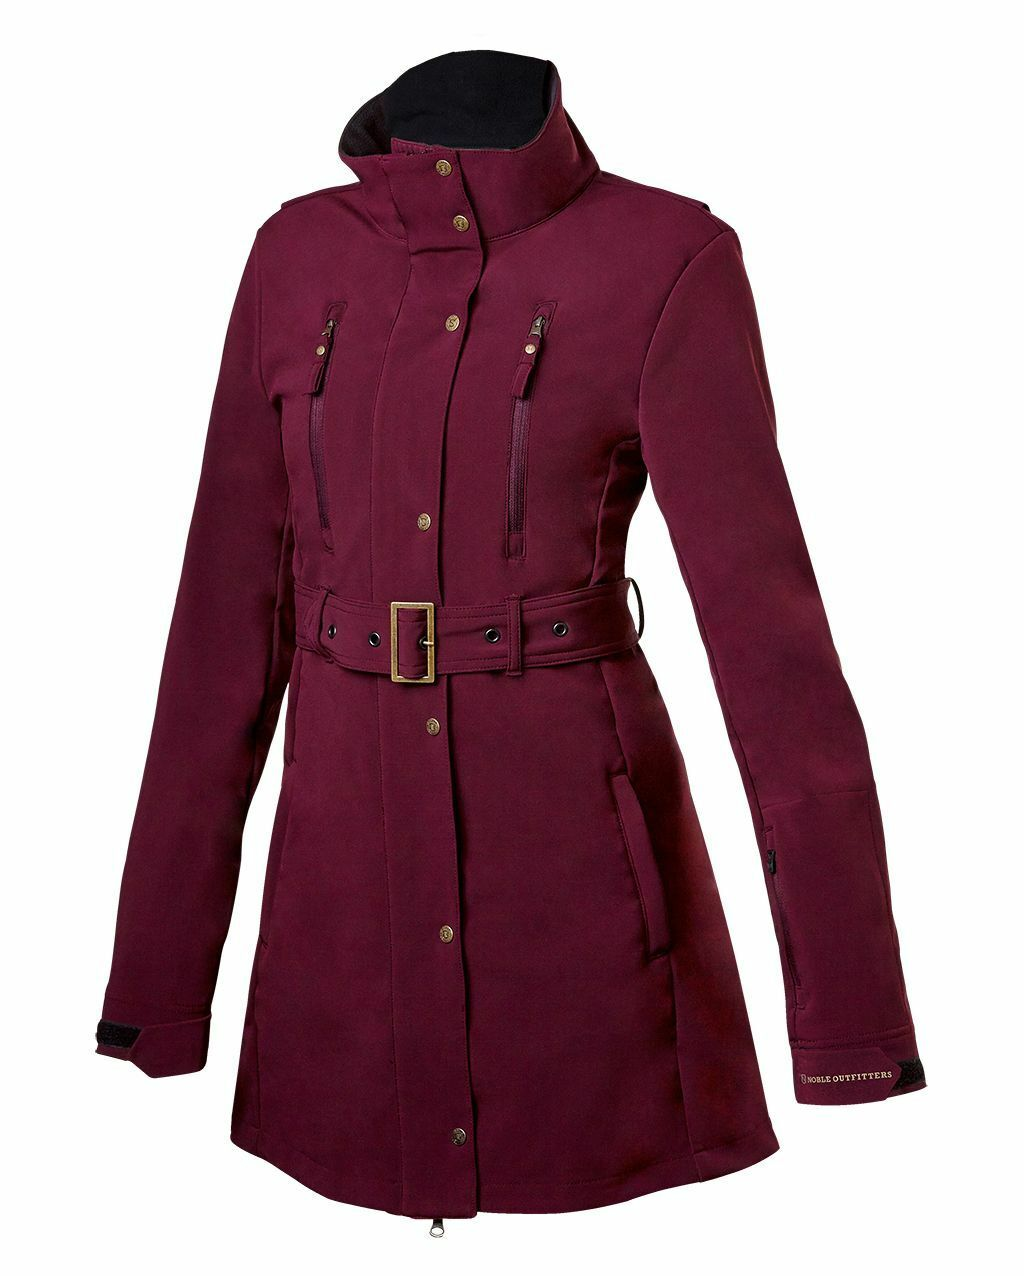 New Noble Outfitters Legacy Coat- Wine - Various Größes